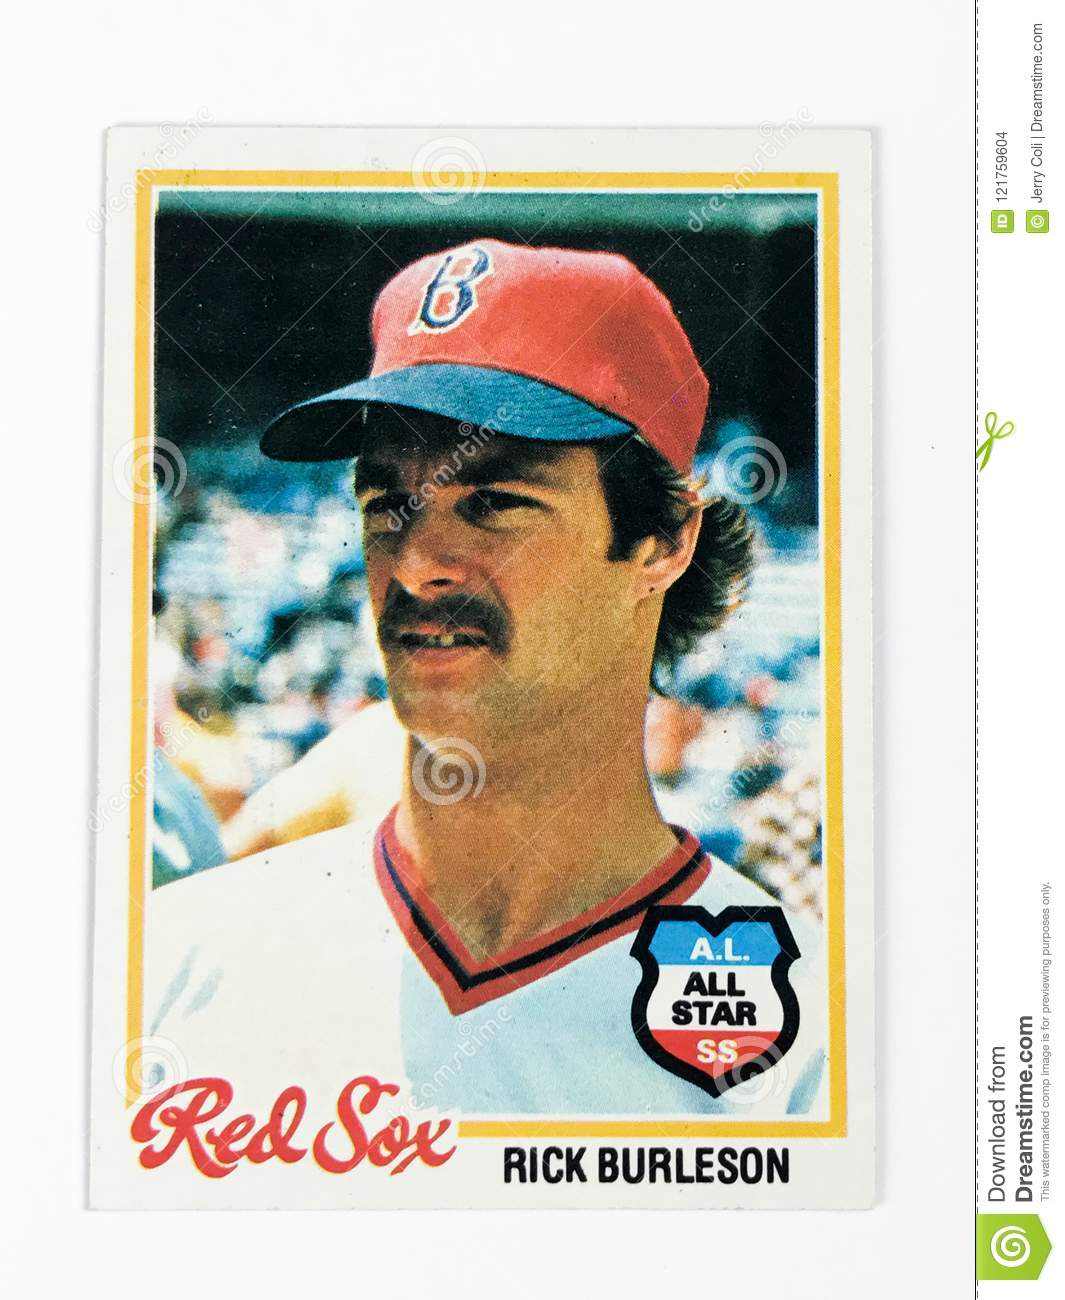 Vintage 1978 Topps Baseball Card Featuring Rick Burleson